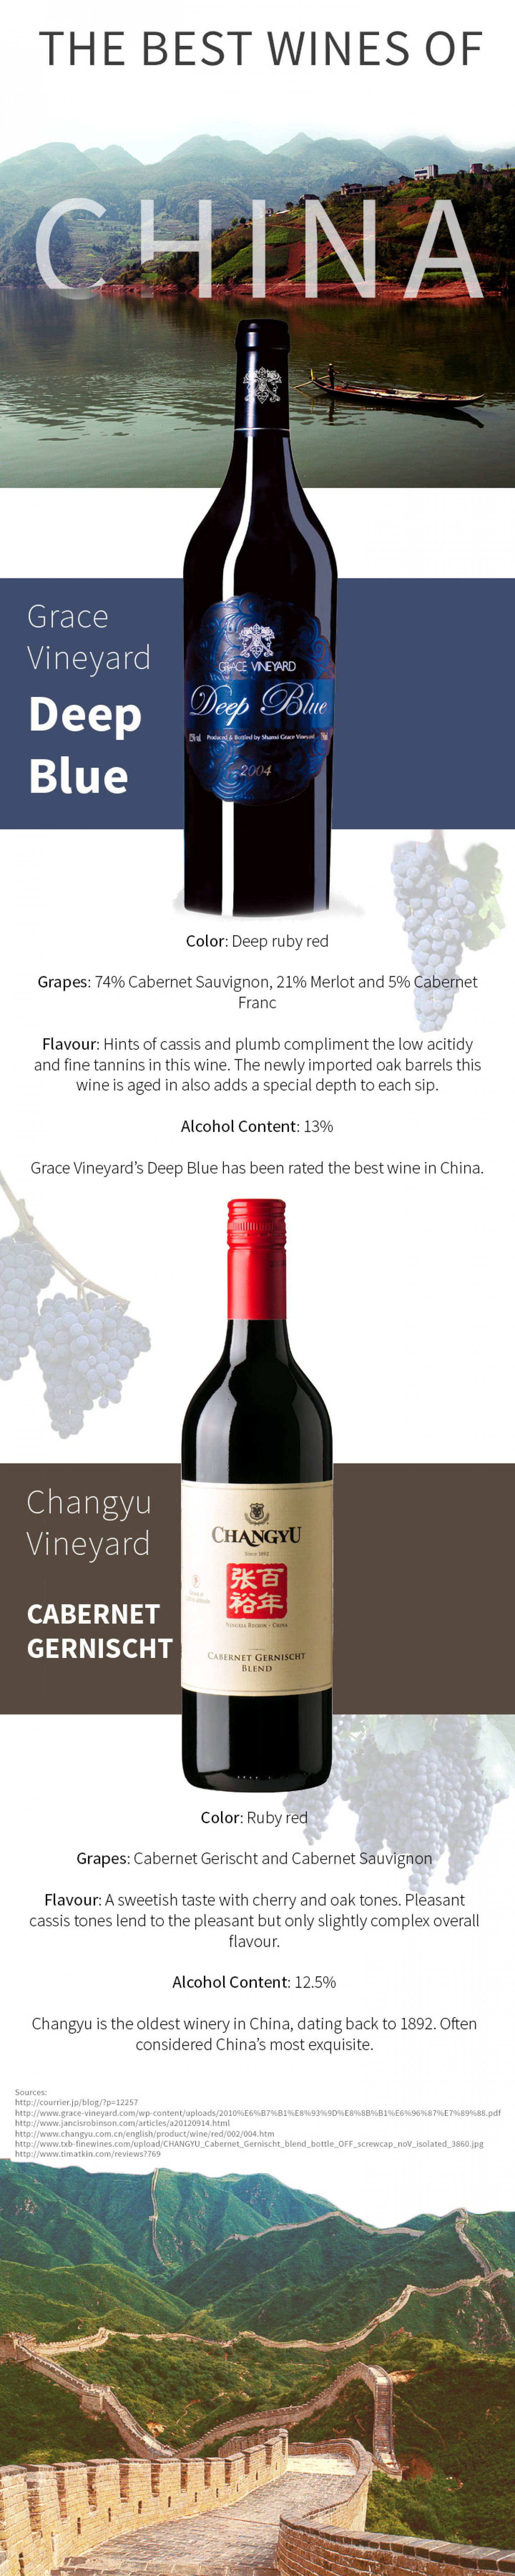 Top Two Wines of China Infographic